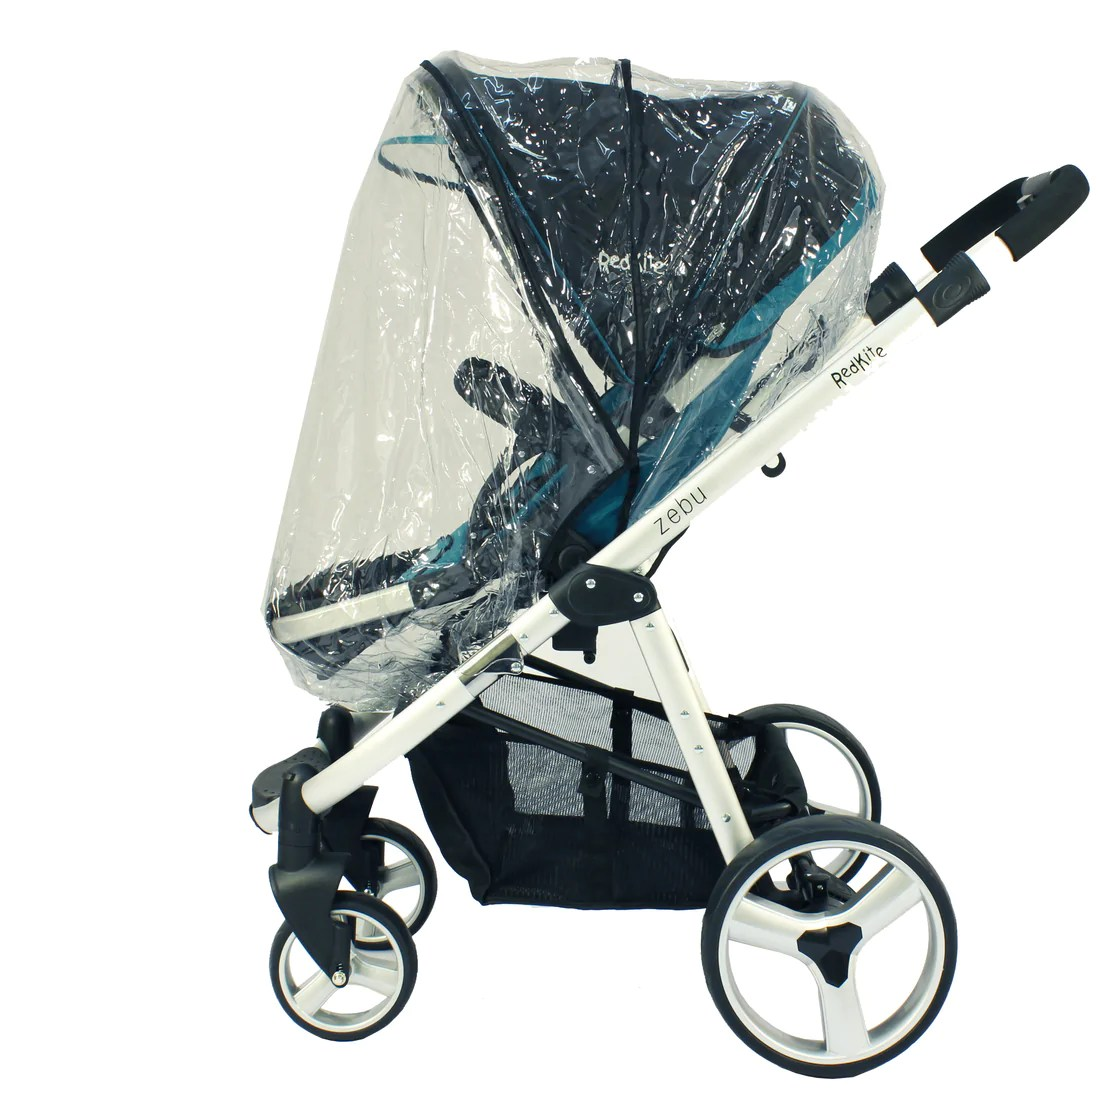 Joolz Stroller Amazon Sale Now On Save Up To 50 Luxury Baby Prducts By Isafe